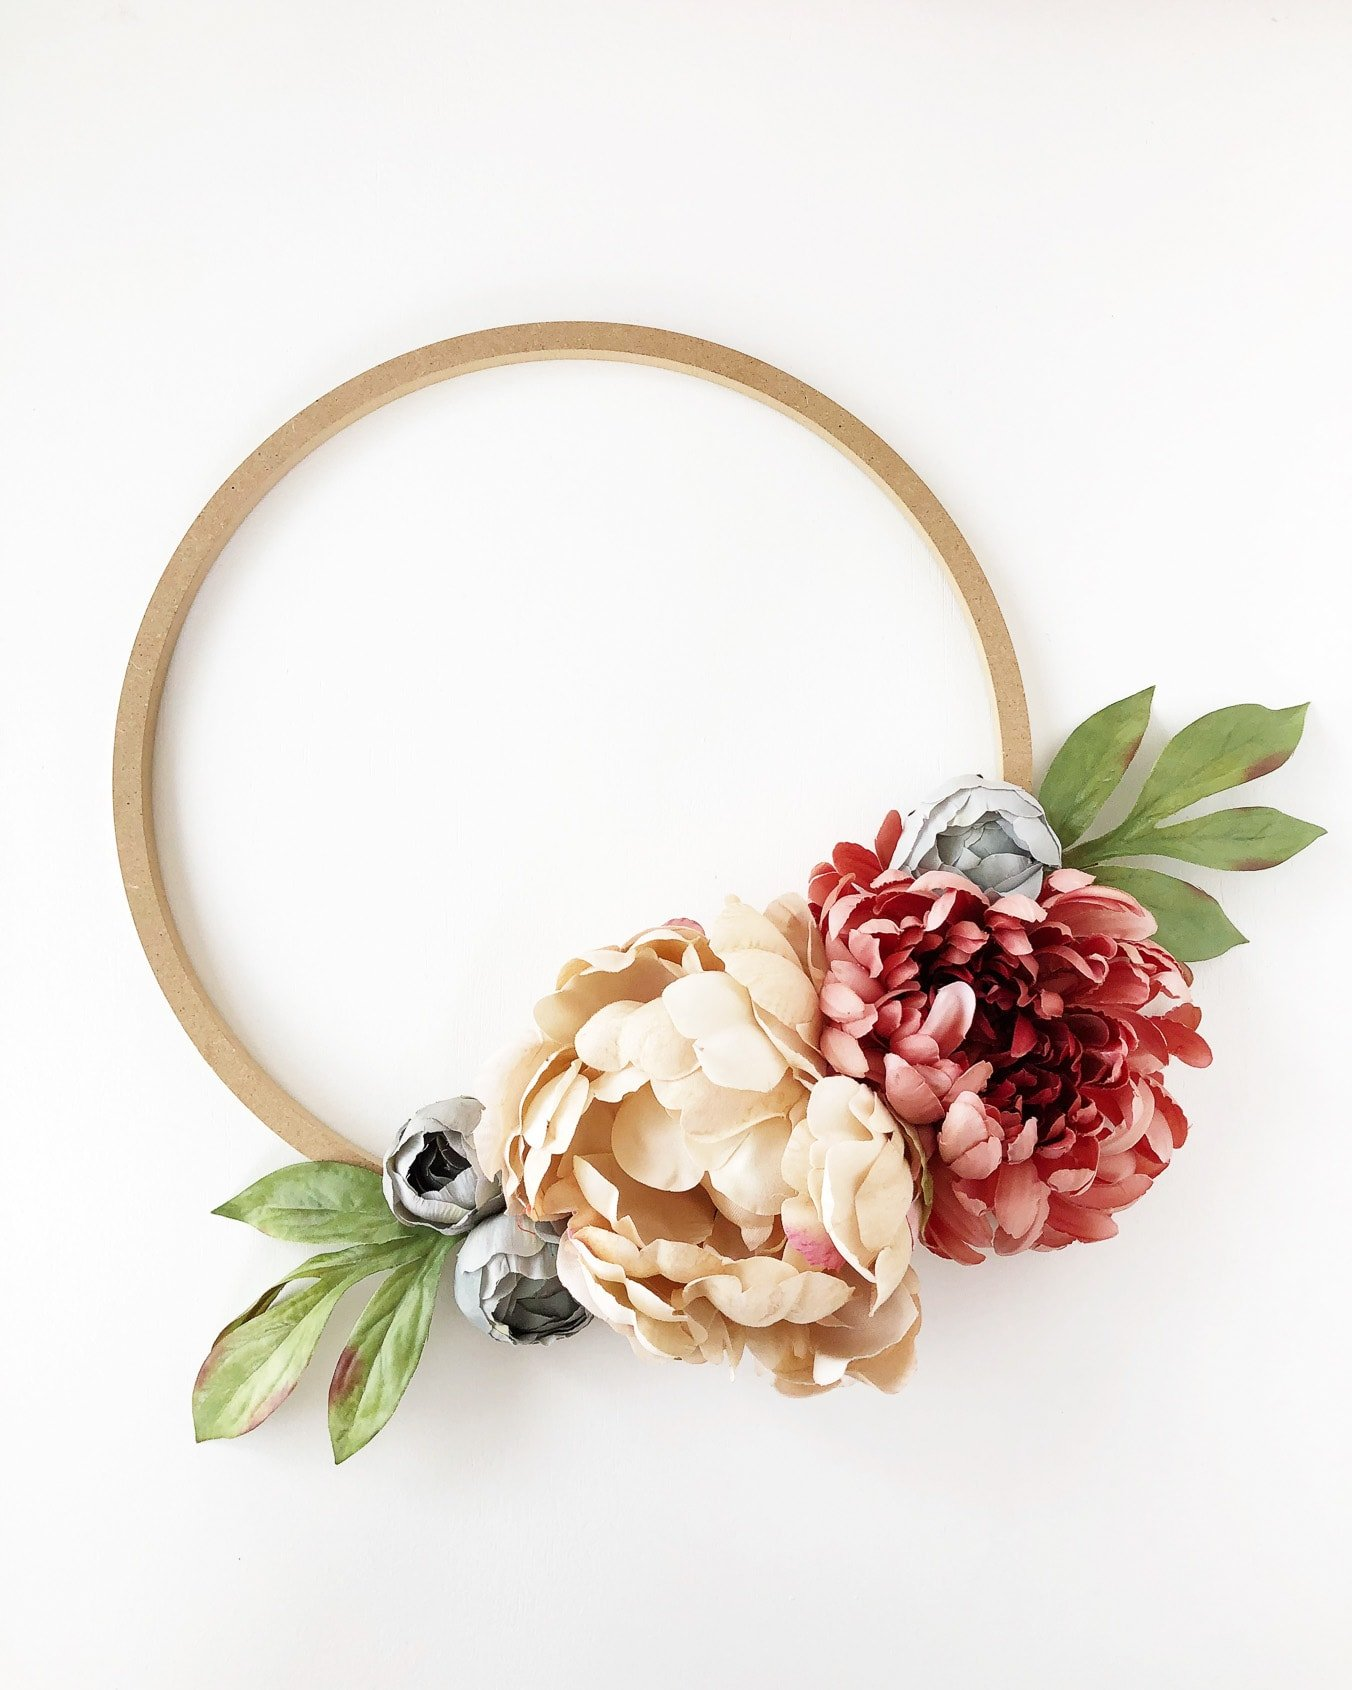 DIY Fall Floral Hoop Wreath